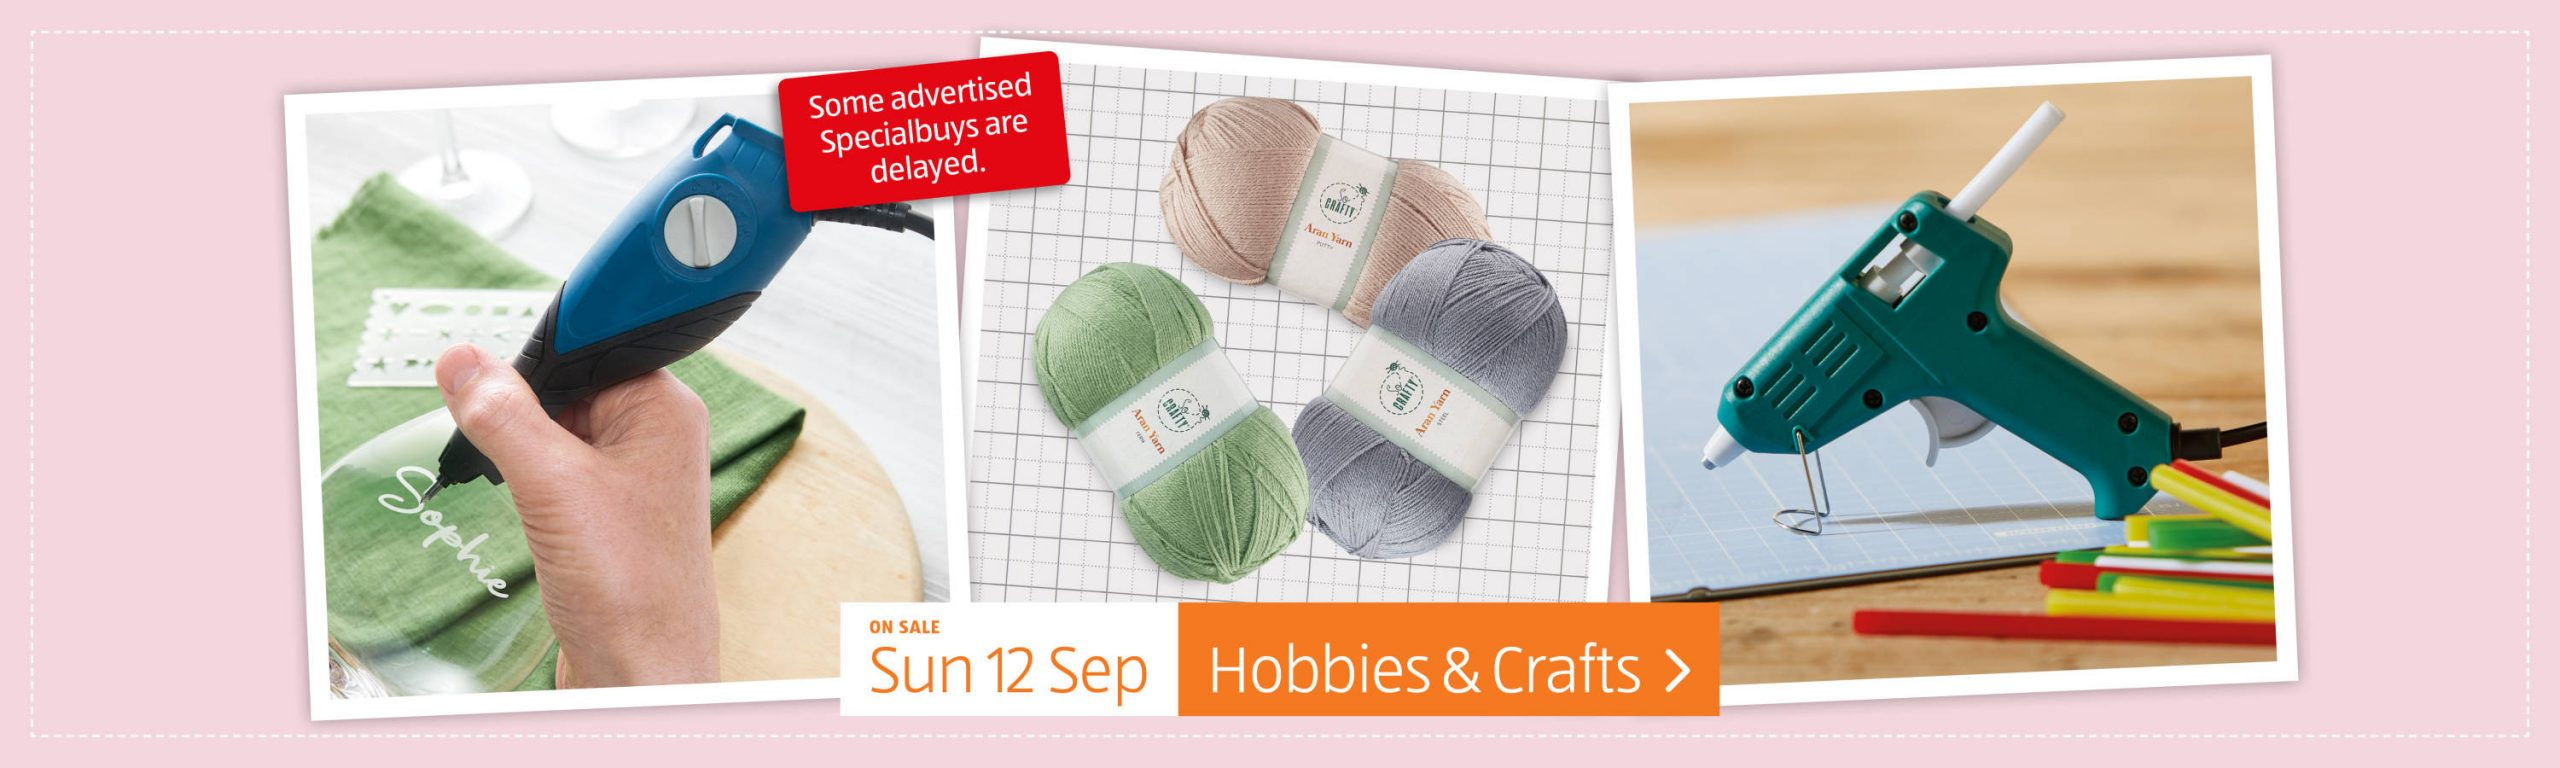 ALDI Hobbies & Crafts in ALDI Sunday Offers This Week 12th September 2021